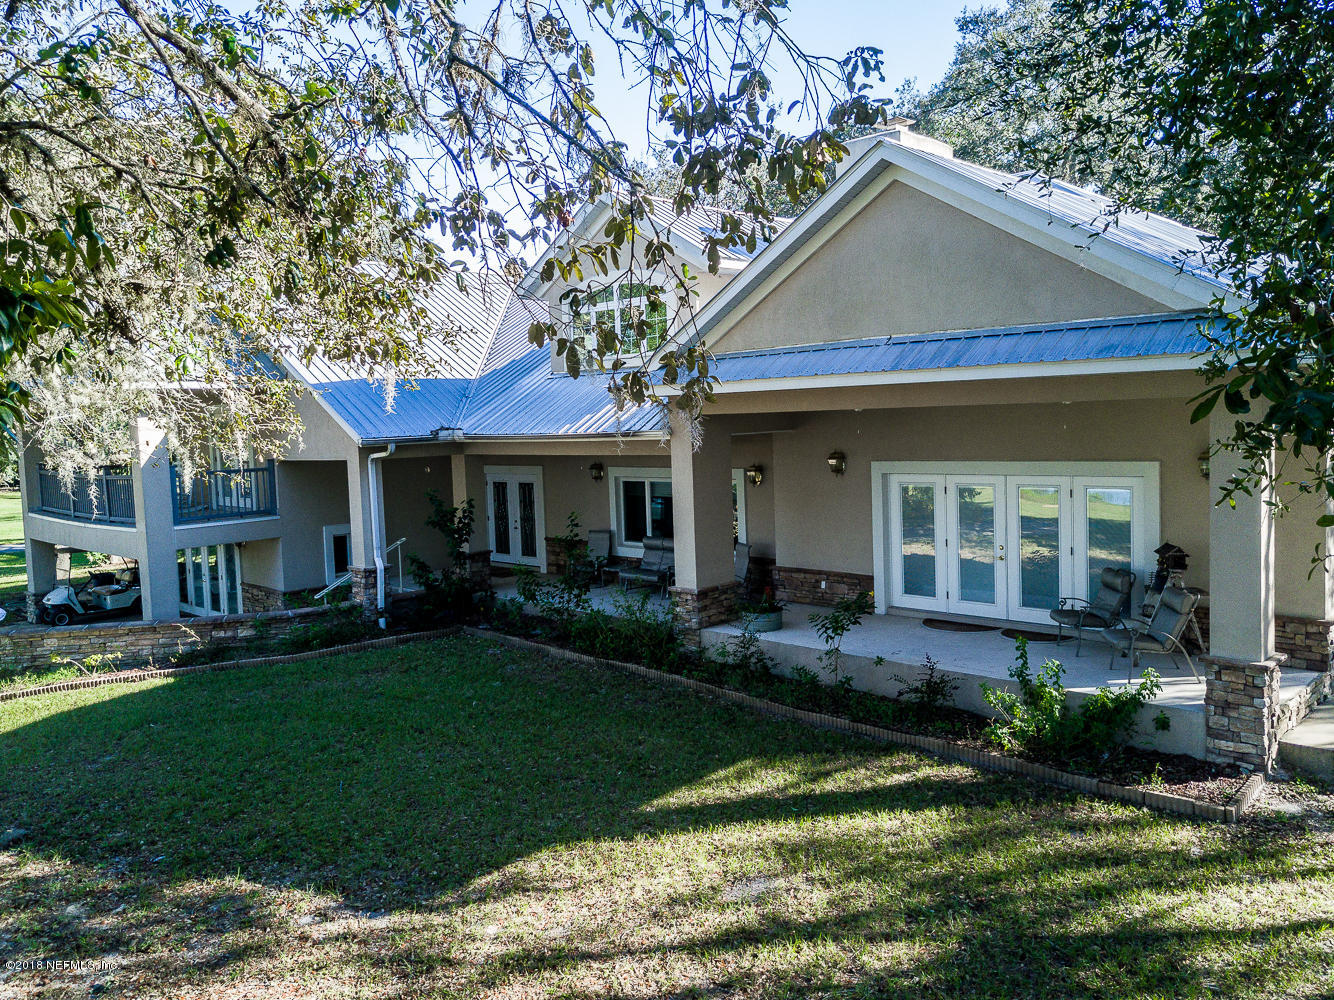 118 LAKE GENEVA, CRESCENT CITY, FLORIDA 32112, 4 Bedrooms Bedrooms, ,3 BathroomsBathrooms,Residential - single family,For sale,LAKE GENEVA,953402